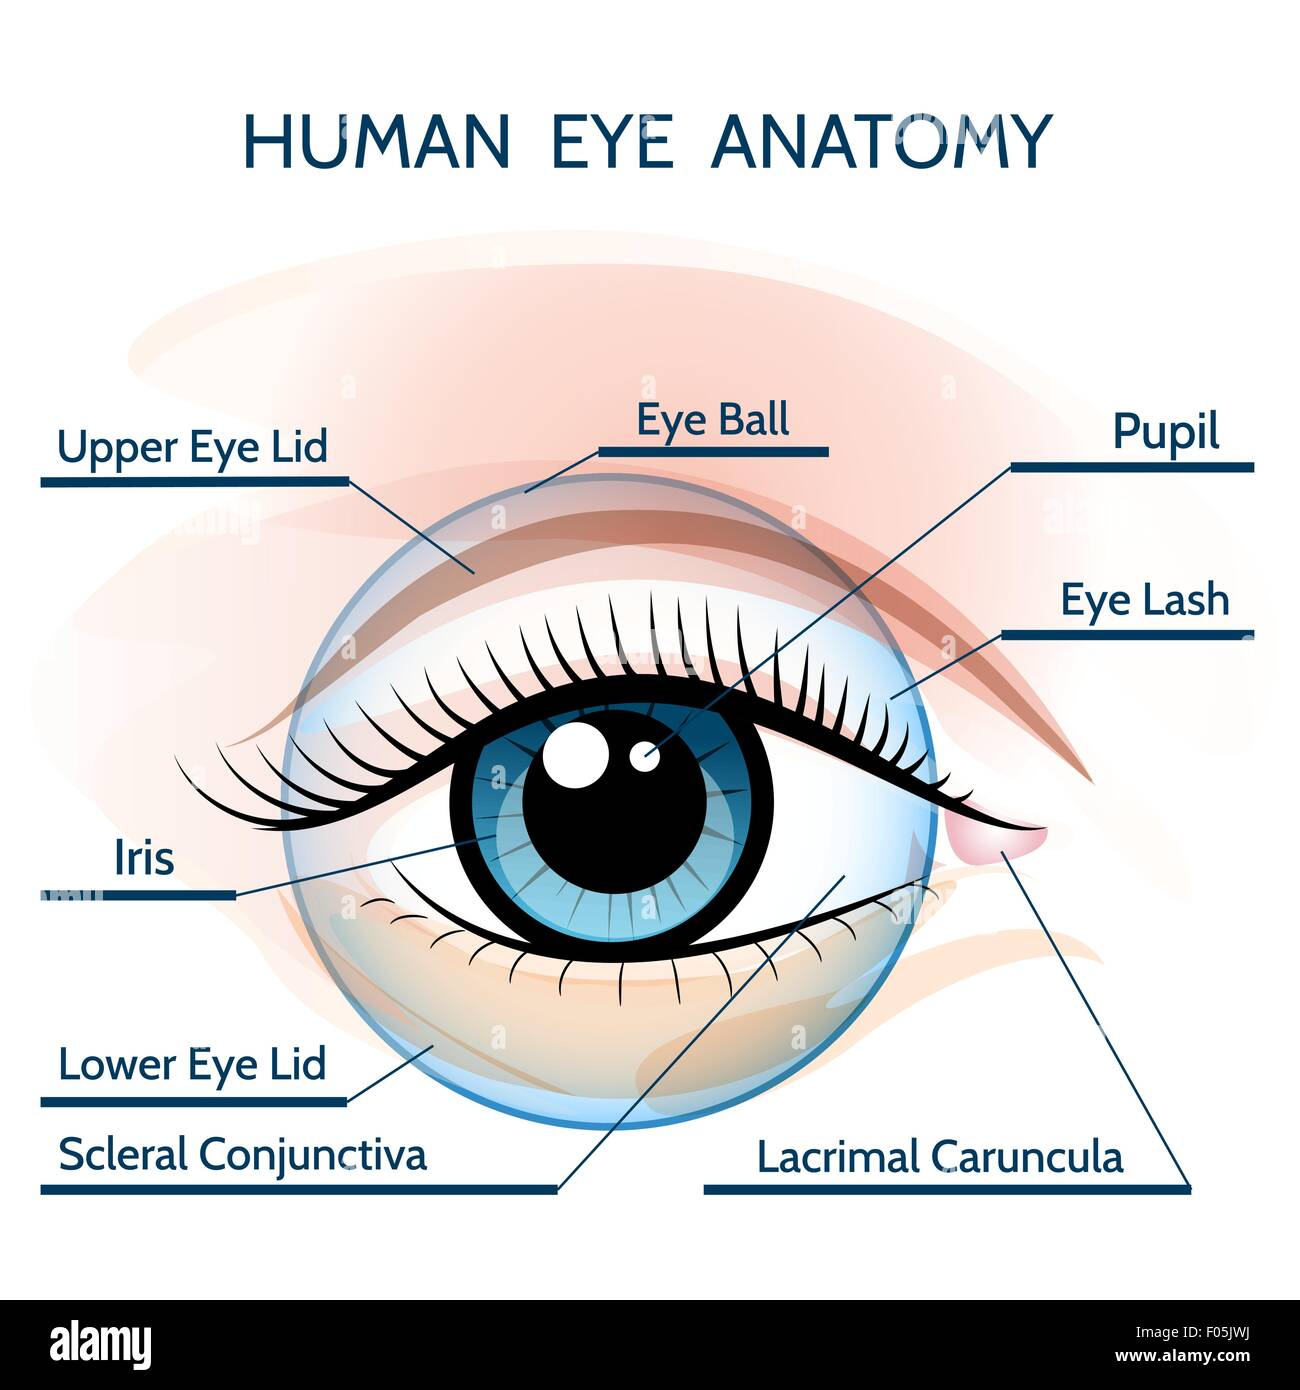 Human eye anatomy illustration. Only free font used Stock Vector Art ...